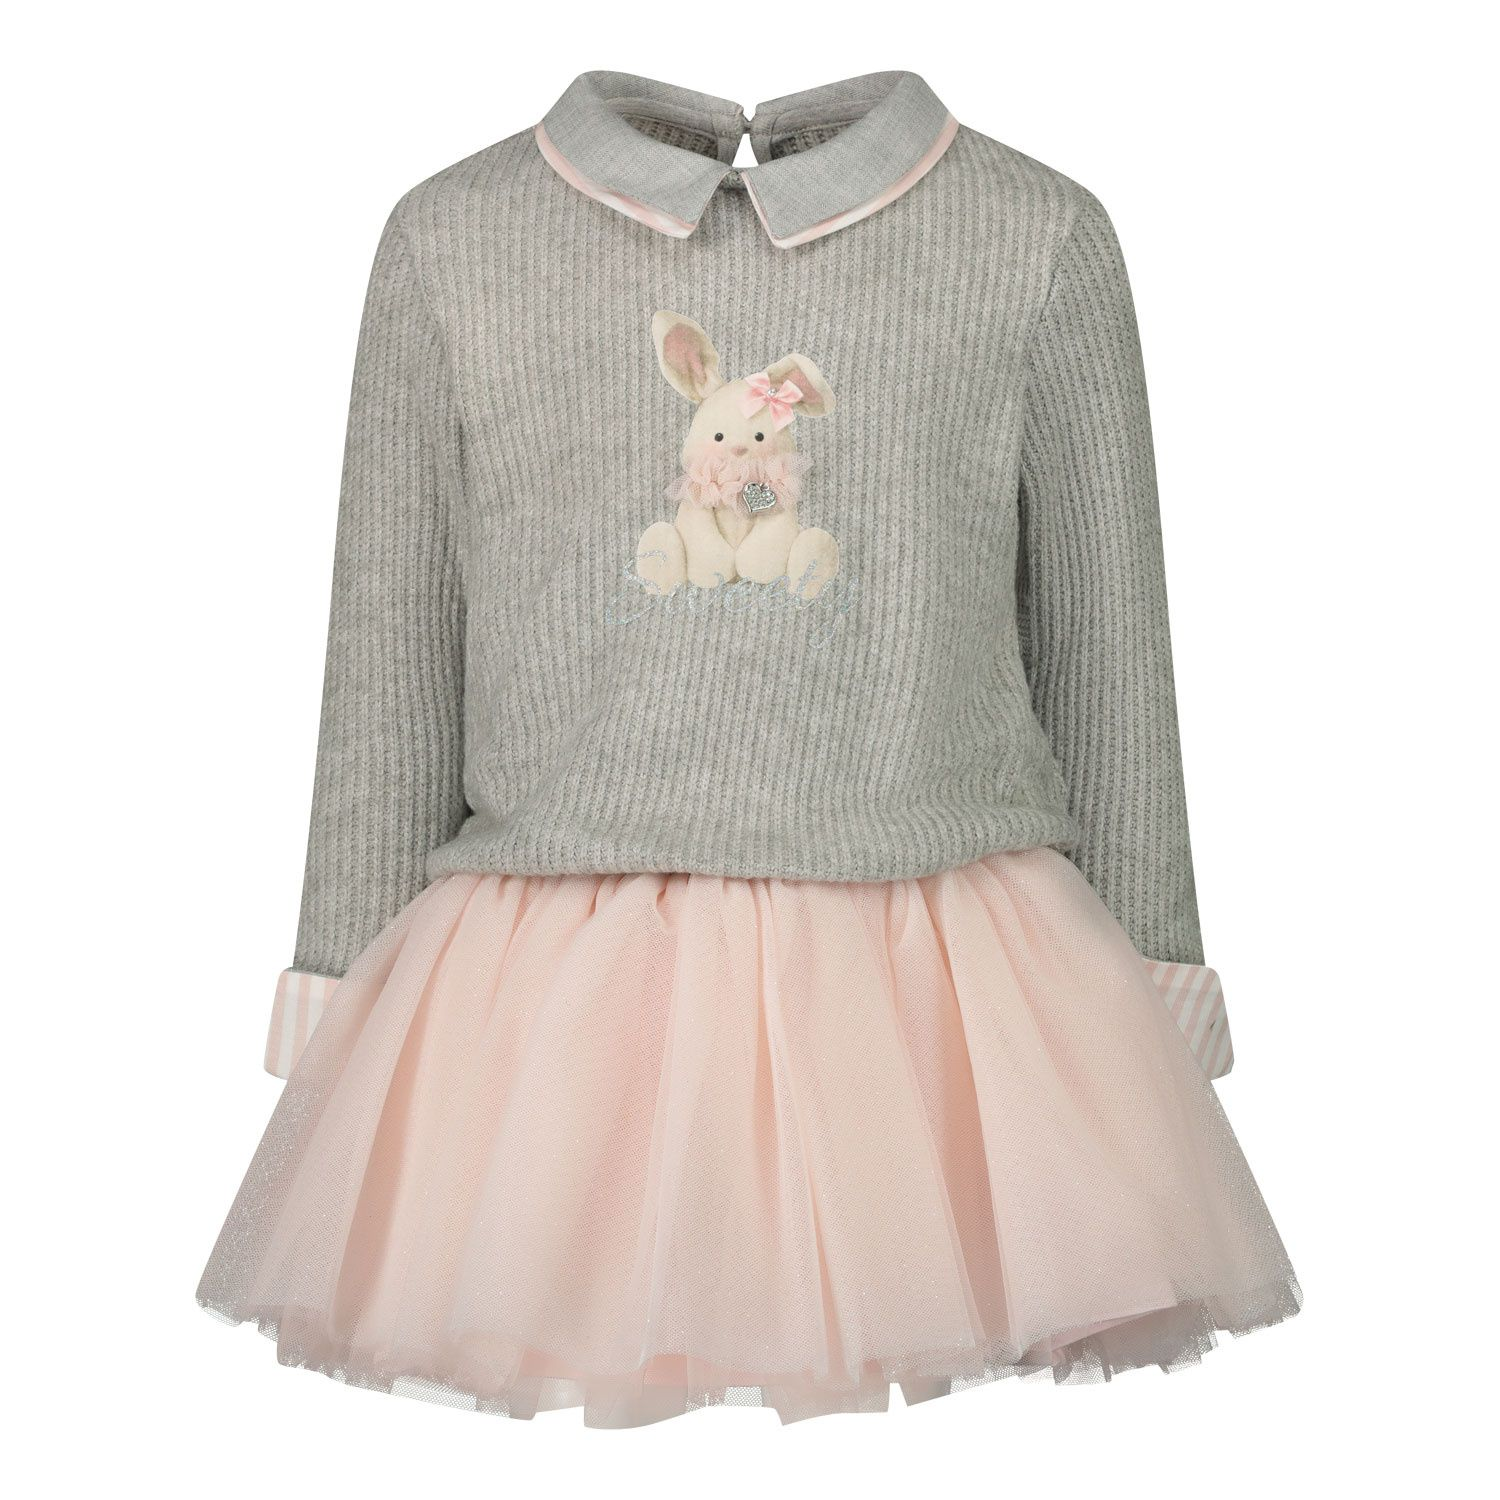 Picture of Lapin 202E3226 baby dress light gray